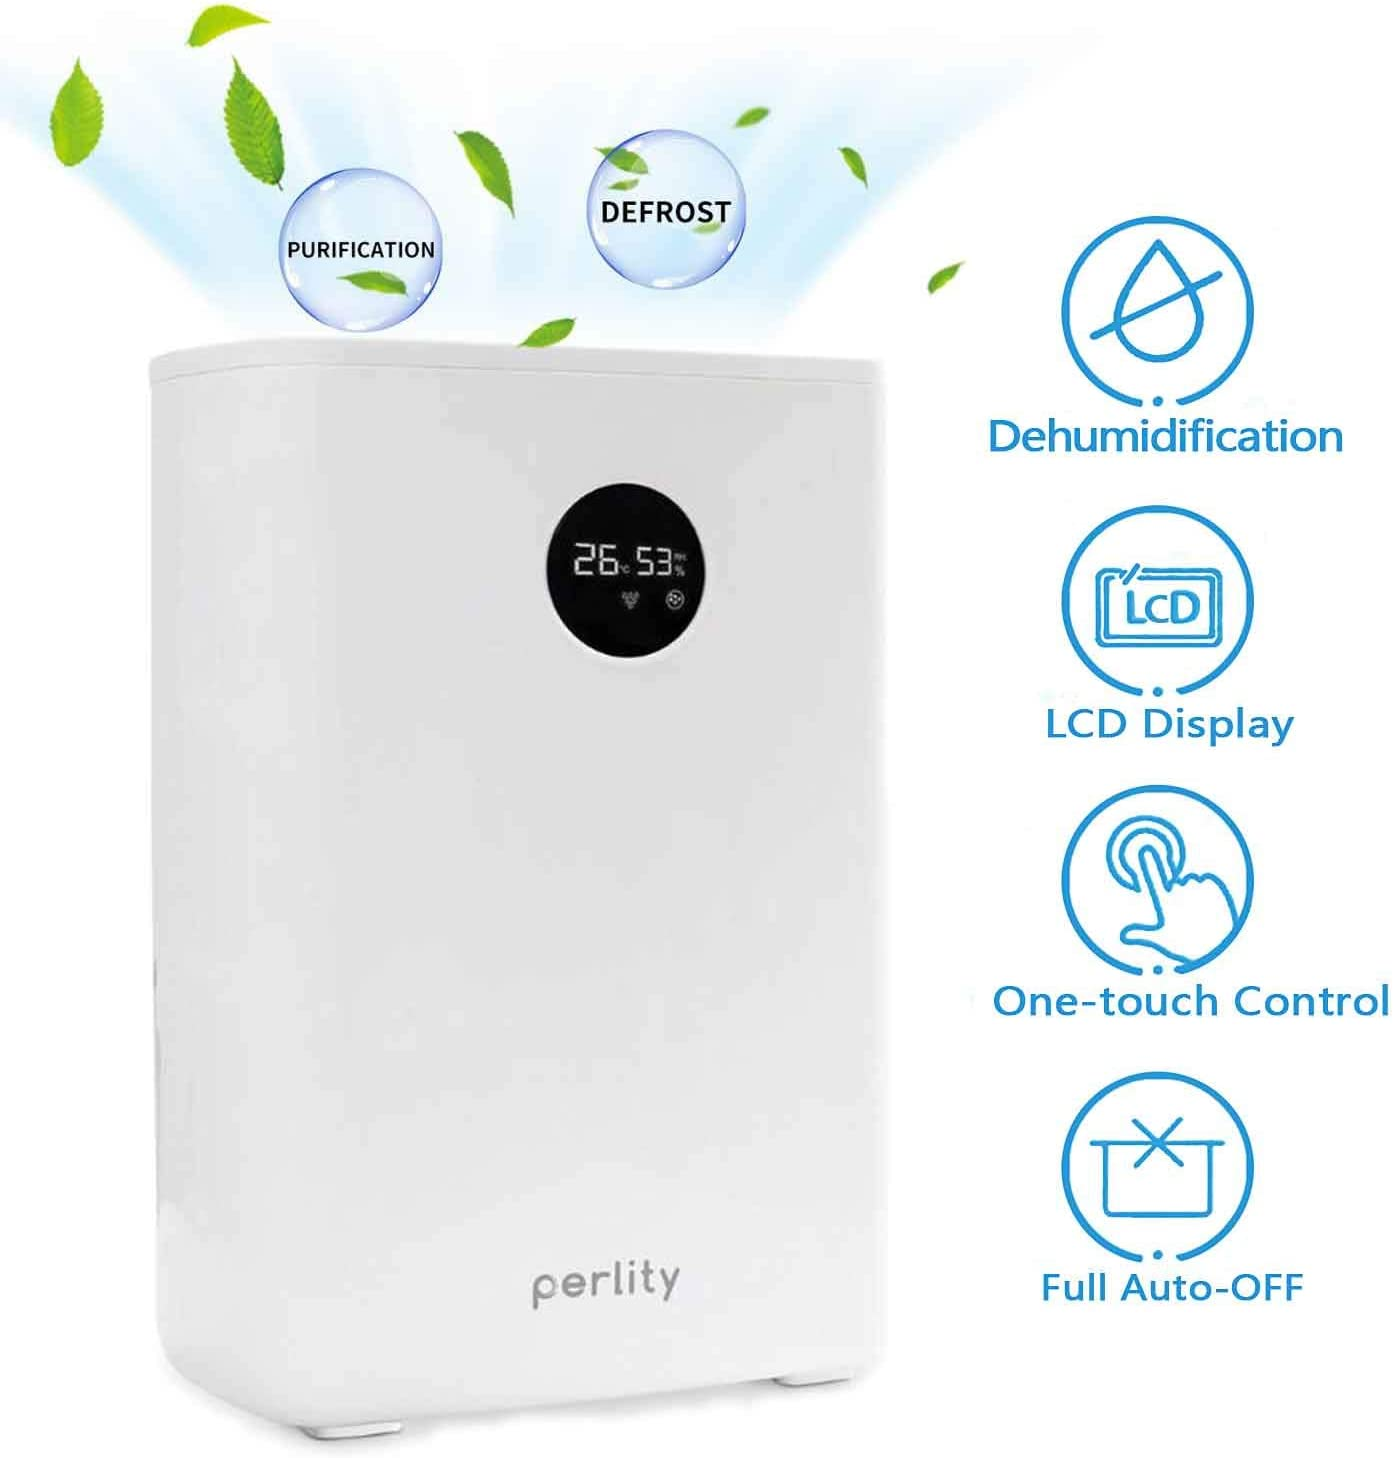 Perlity Dehumidifier Pint Dehumidifier Portable Electric Mini Dehumidifier for Bathroom with Round LCD White